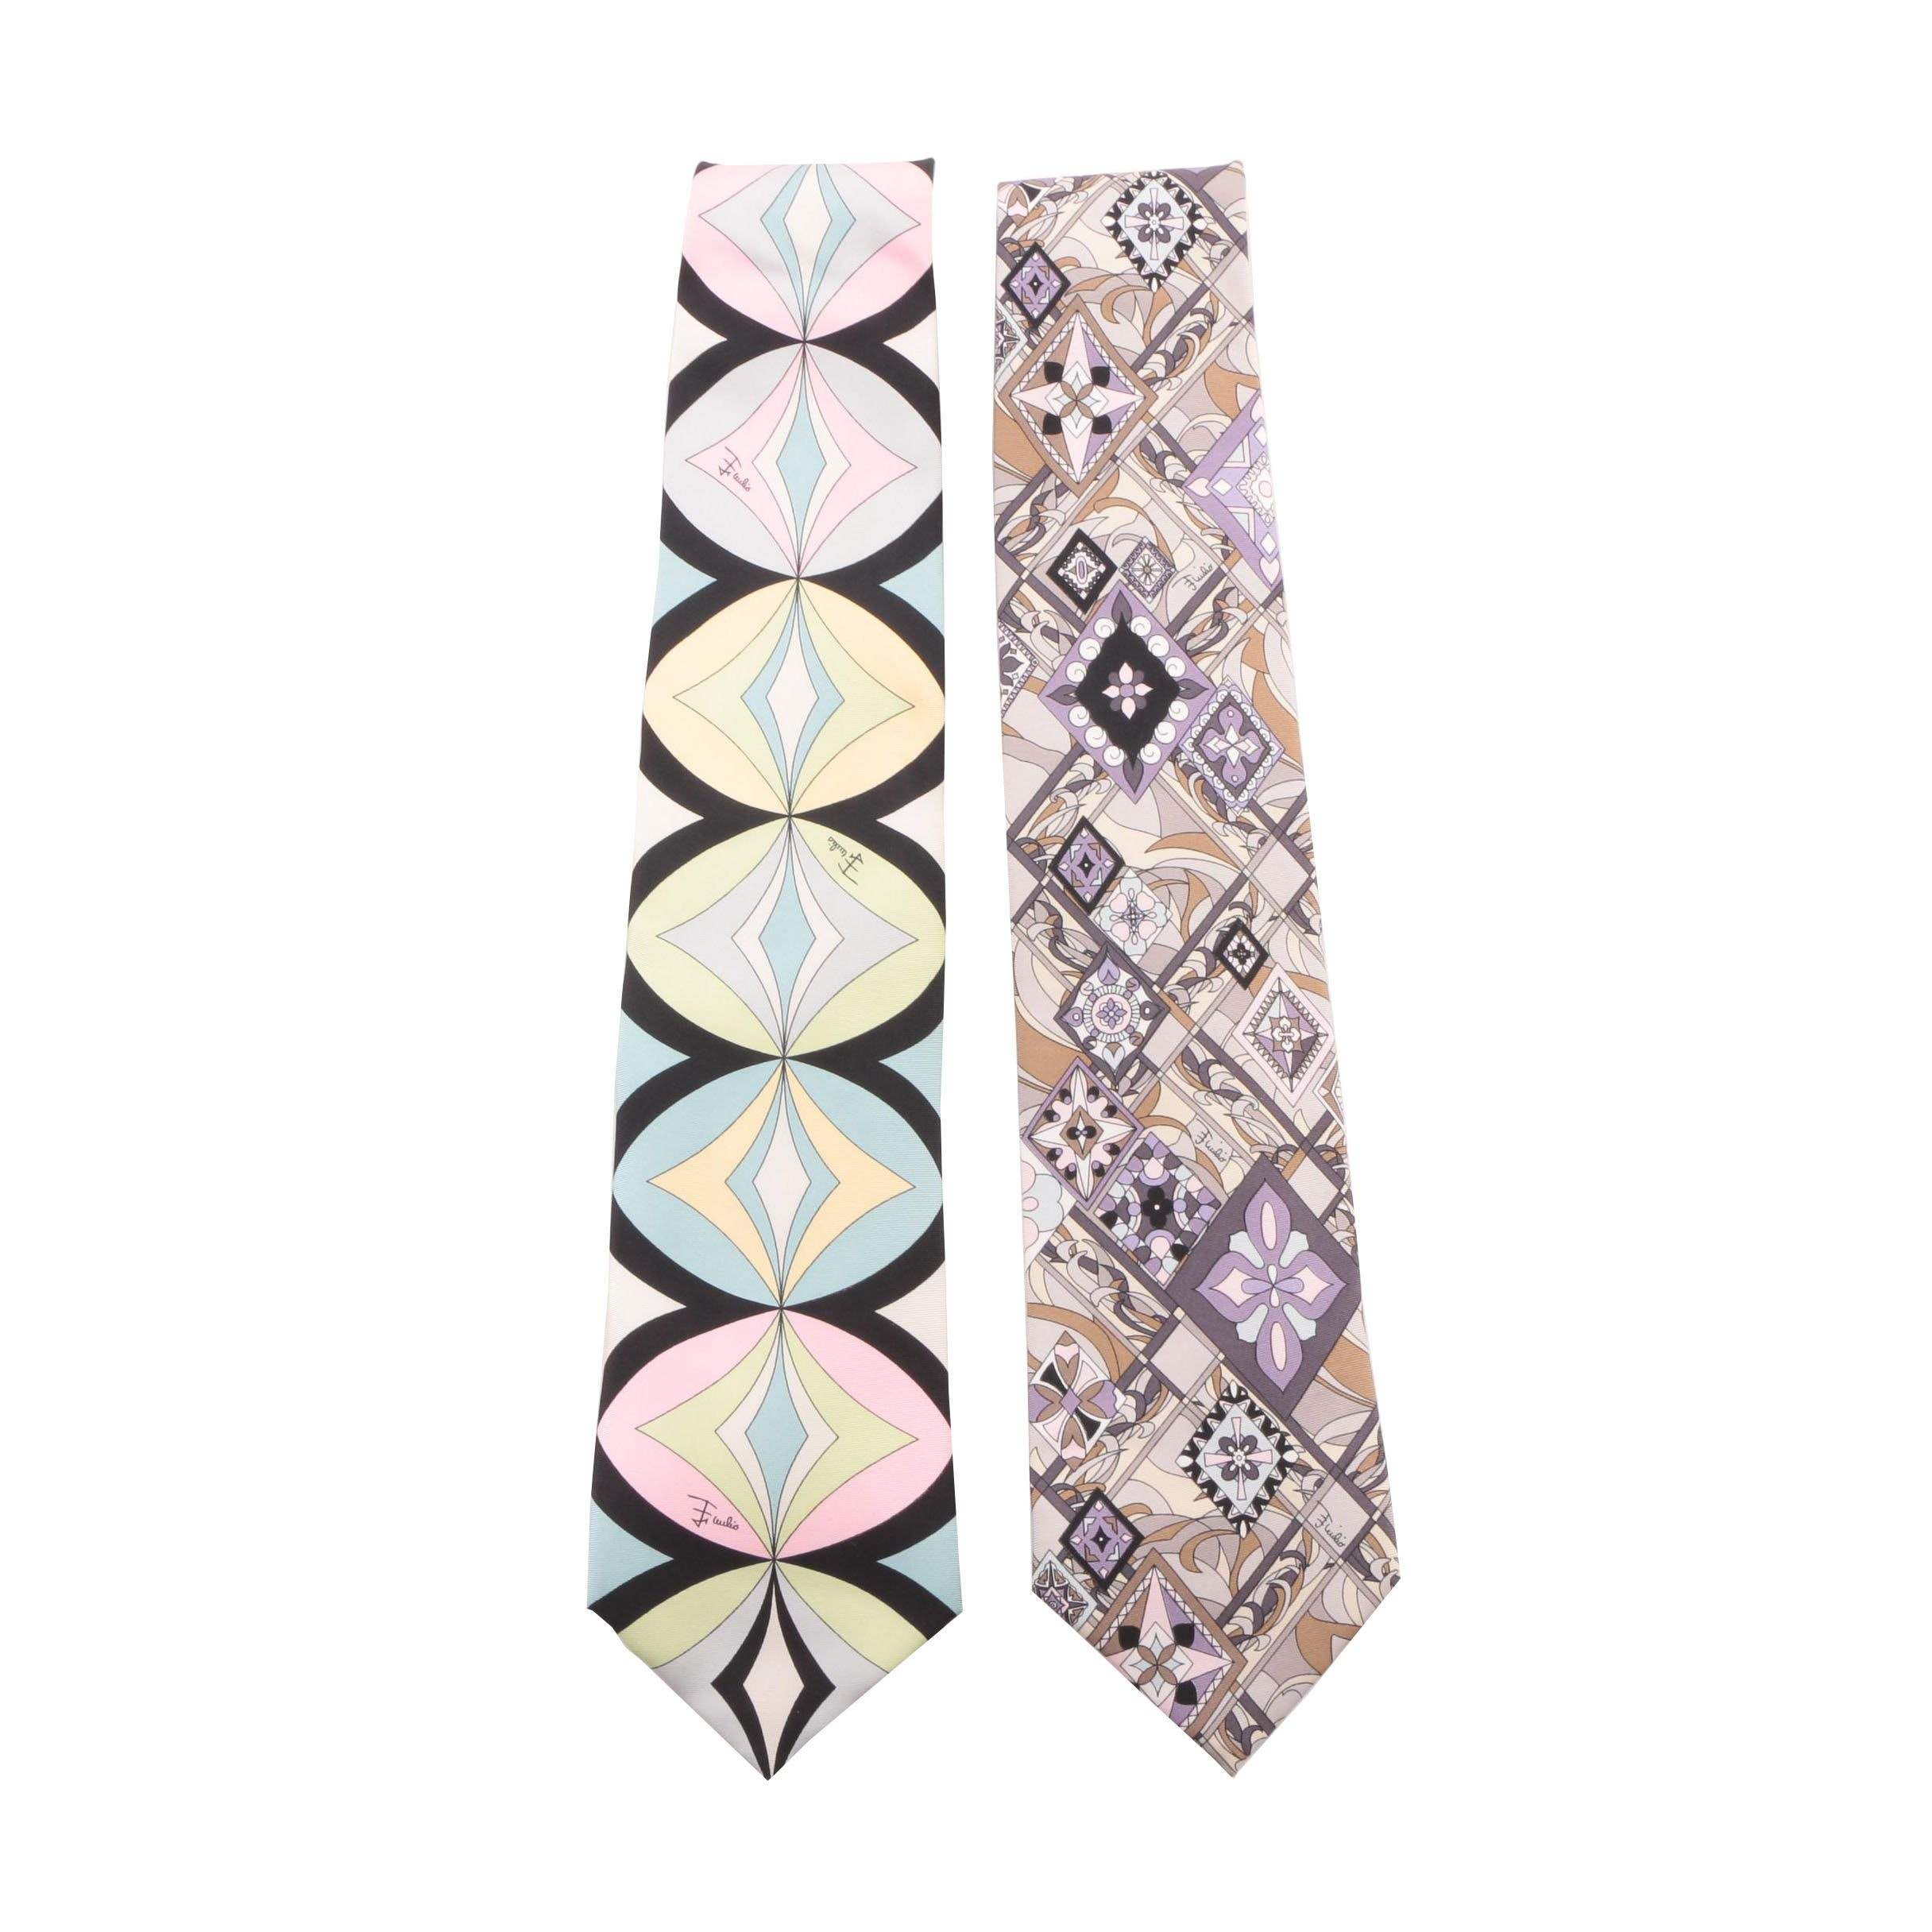 Emilio Pucci Multicolored Geometric and Abstract Print Silk Neckties